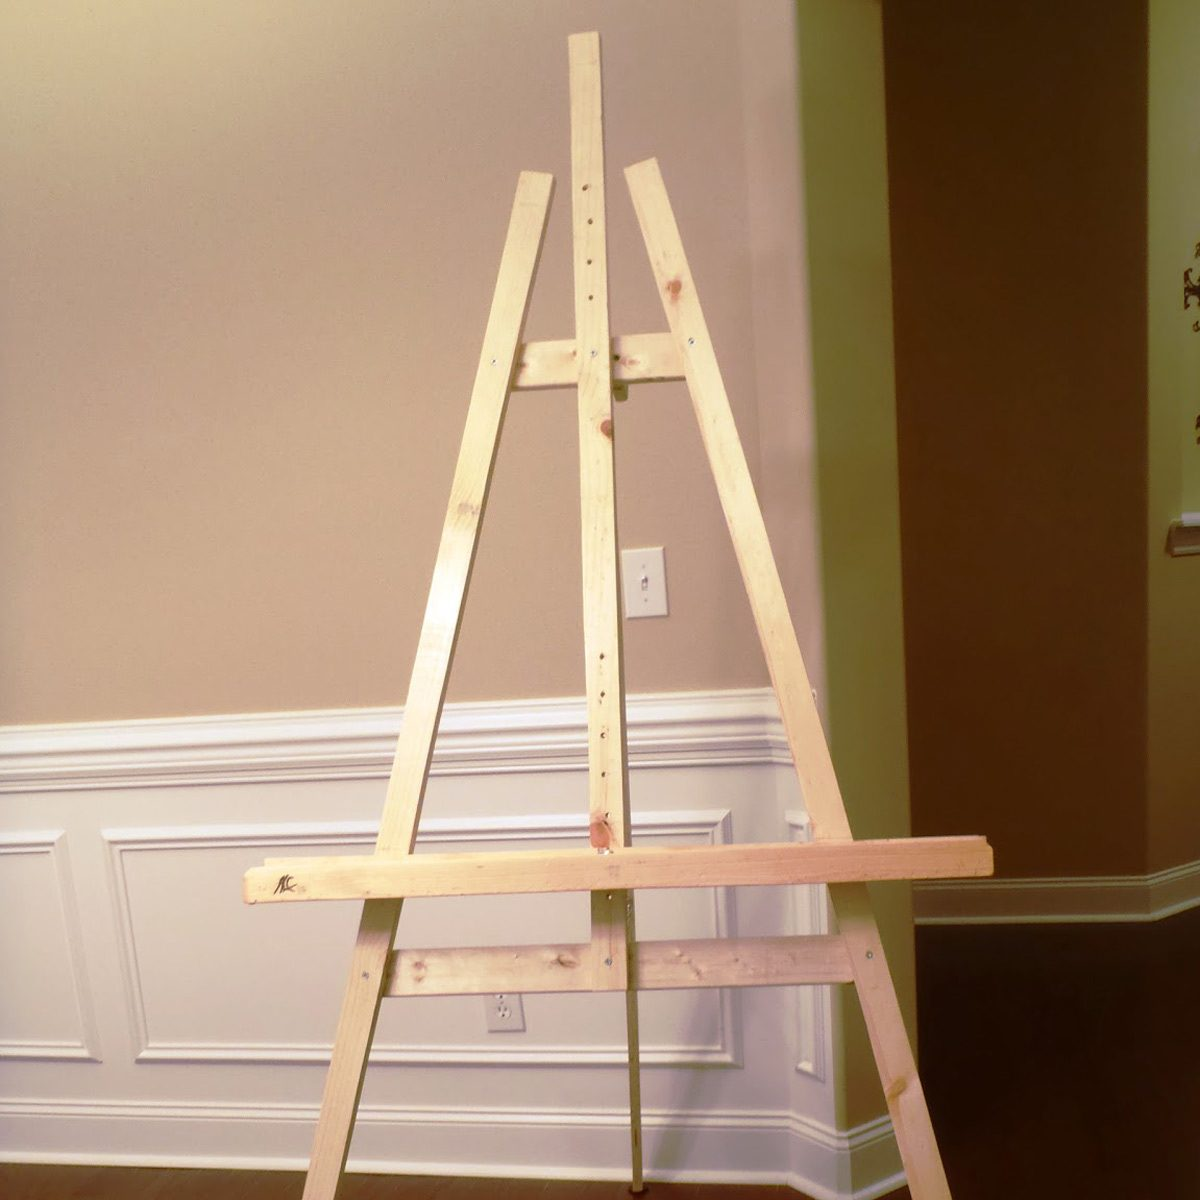 Build an Easel